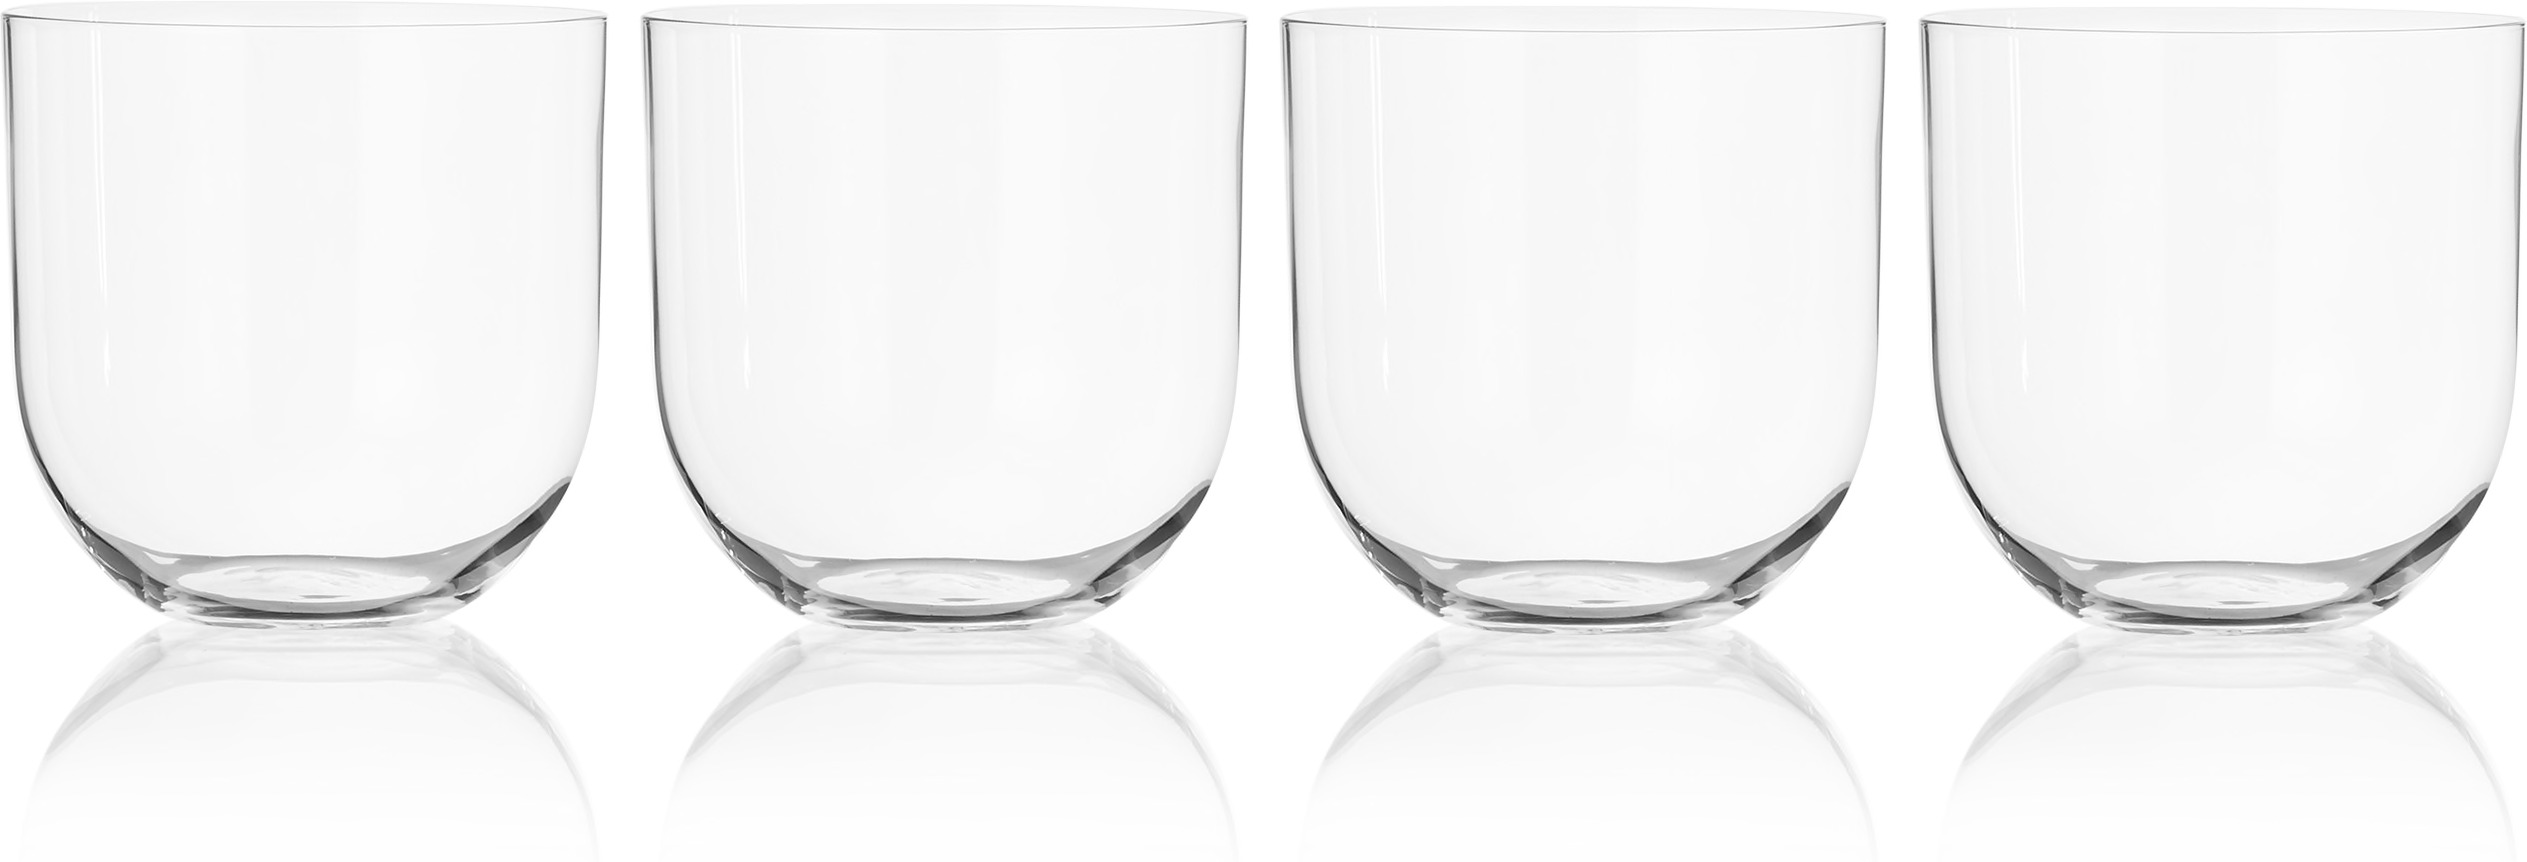 Soligo 4 x Large Water Glasses